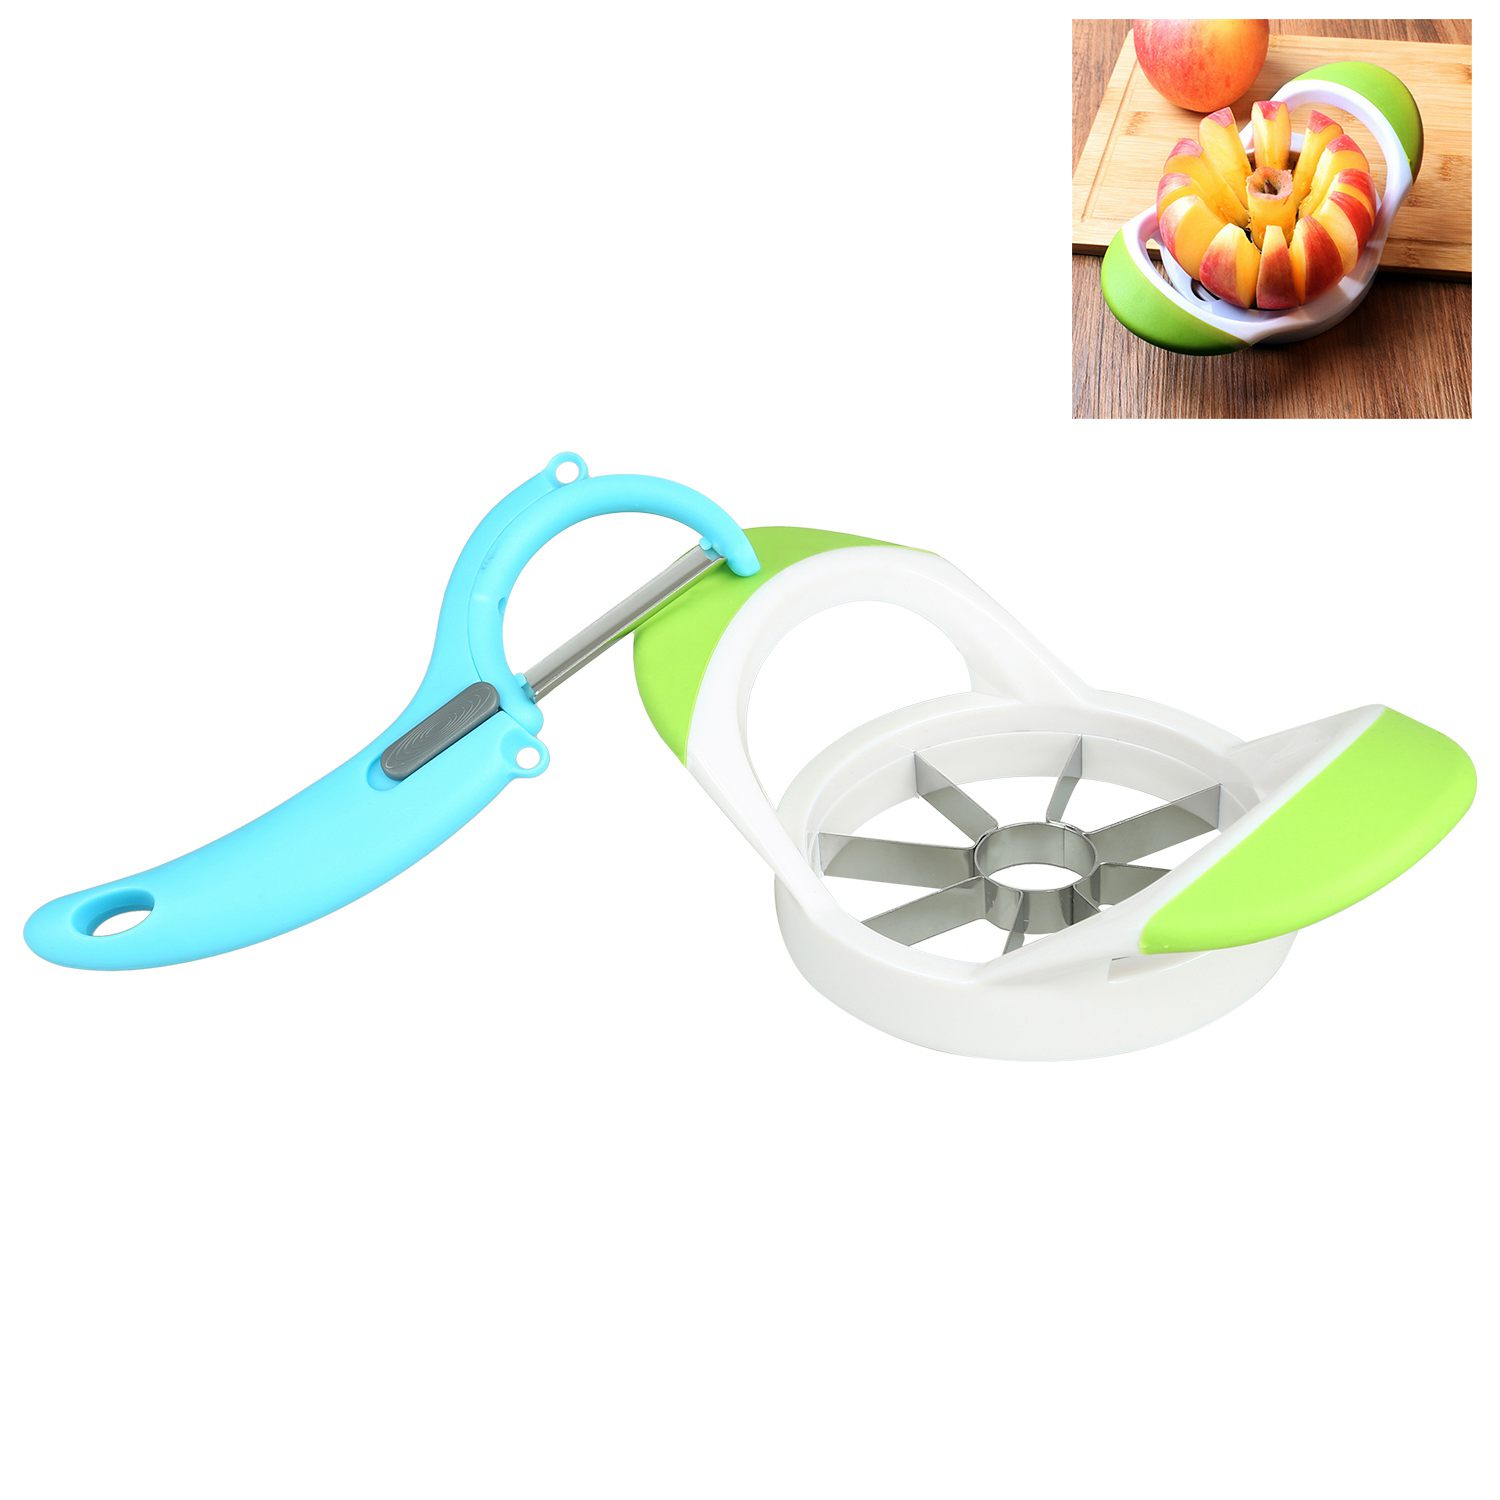 NEW-Apple and Pear Corer Stainless Steel Blades Divider Slicer and PeelerNEW-Apple and Pear Corer Stainless Steel Blades Divider Slicer and Peeler